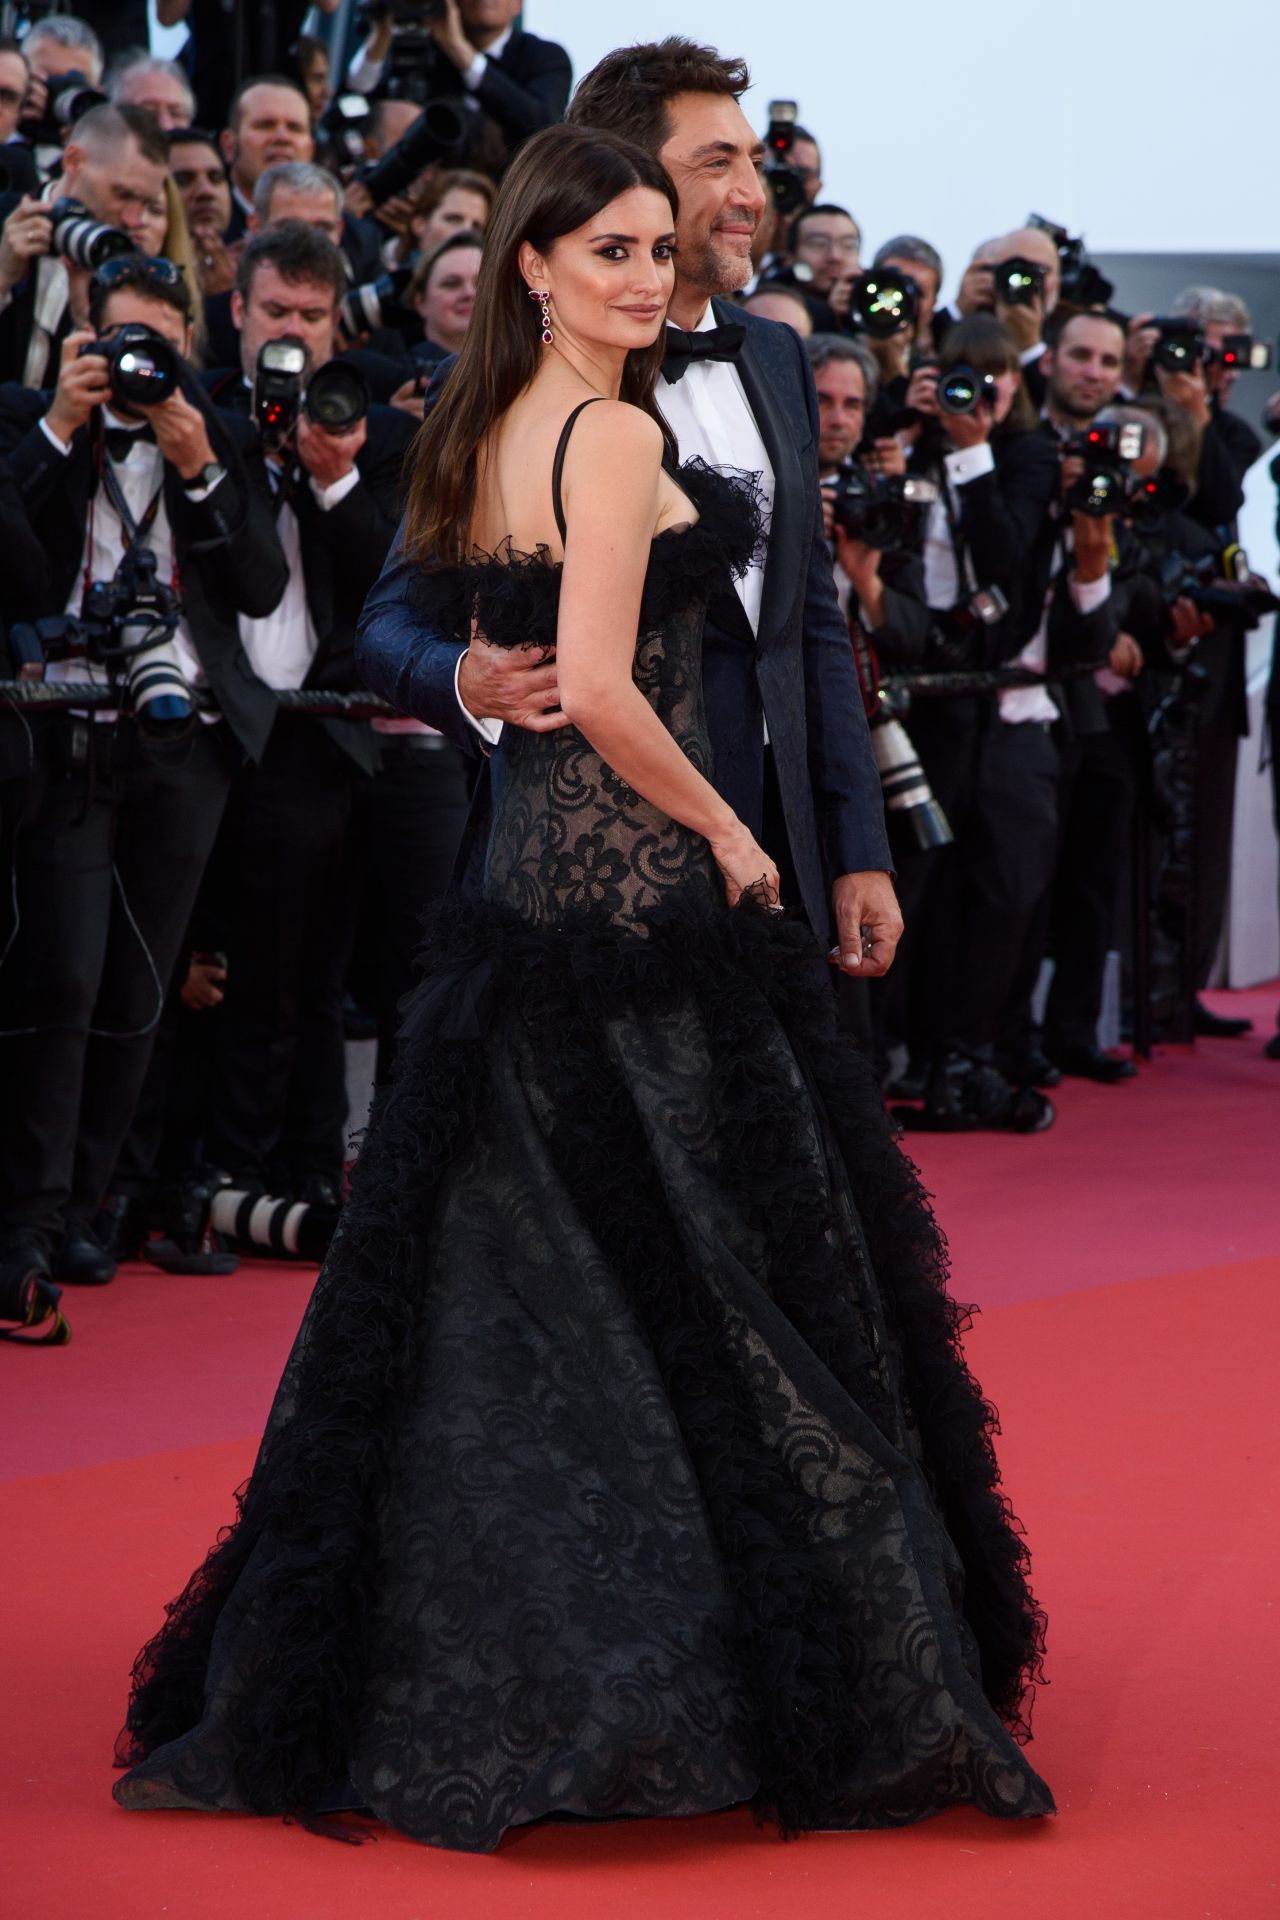 http://celebmafia.com/wp-content/uploads/2018/05/penelope-cruz-everybody-knows-premiere-and-cannes-film-festival-2018-opening-ceremony-6.jpg